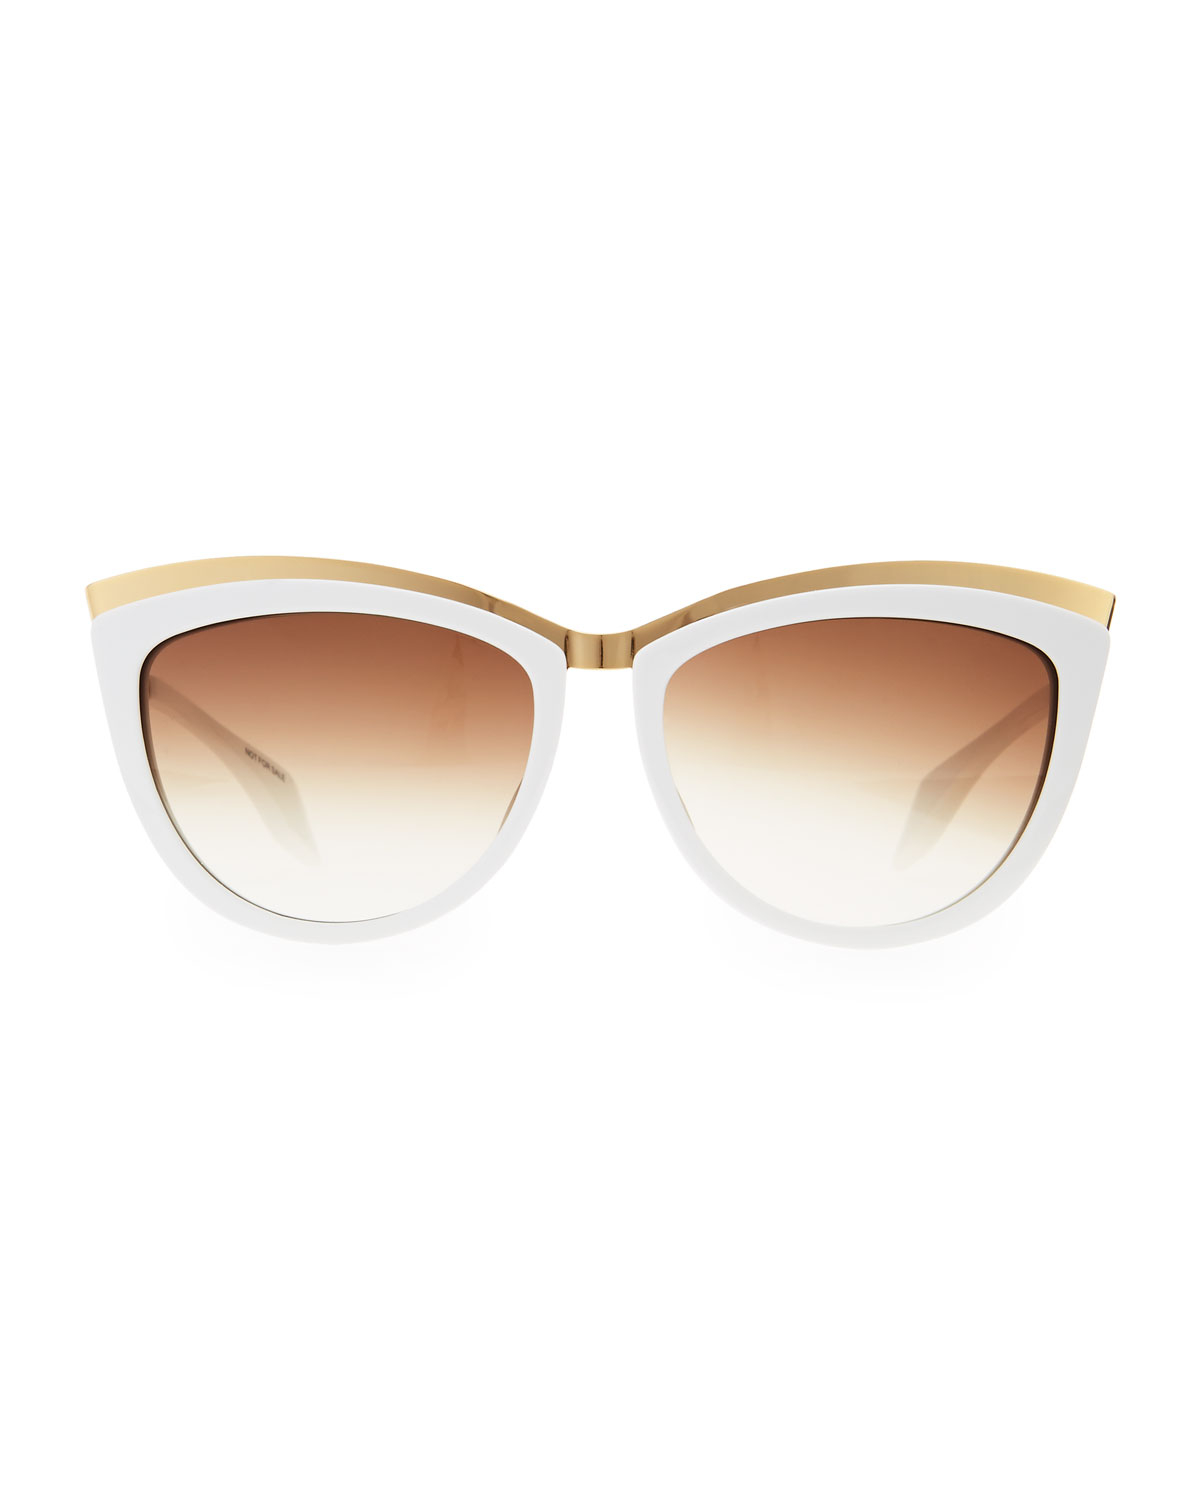 Alexander Mcqueen Cateye Sunglasses  alexander mcqueen colorblock cat eye sunglasses in white lyst